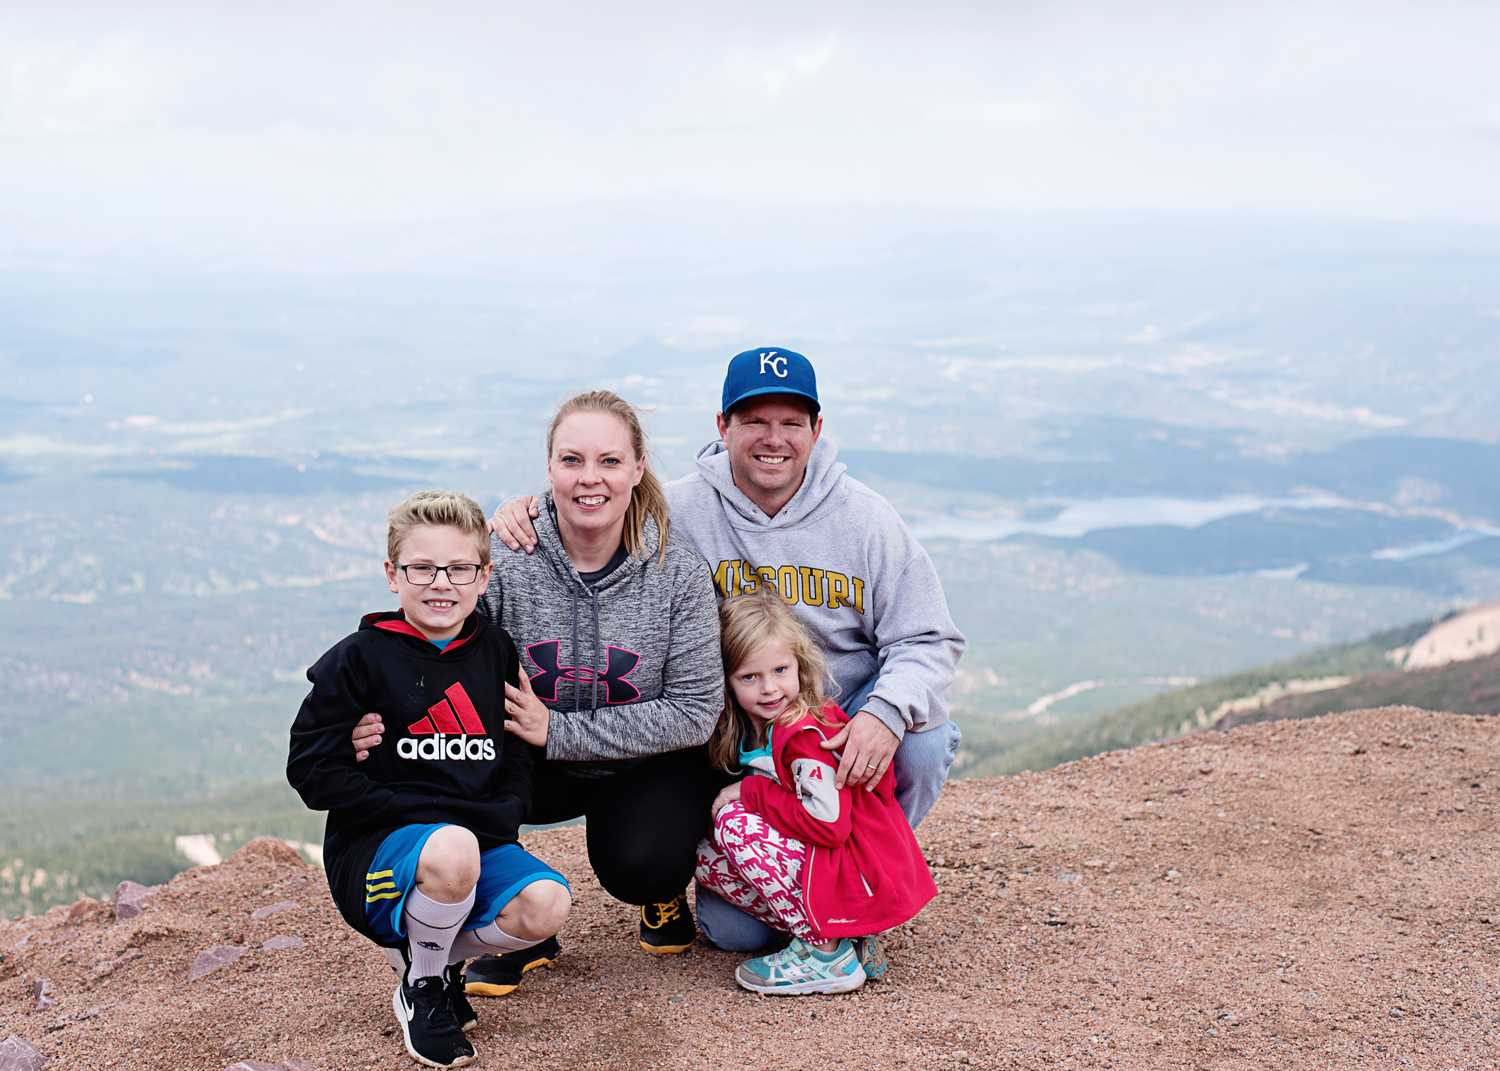 Tips to Help Prepare You For a Trip to Colorado - Altitude Sickness and First Aid